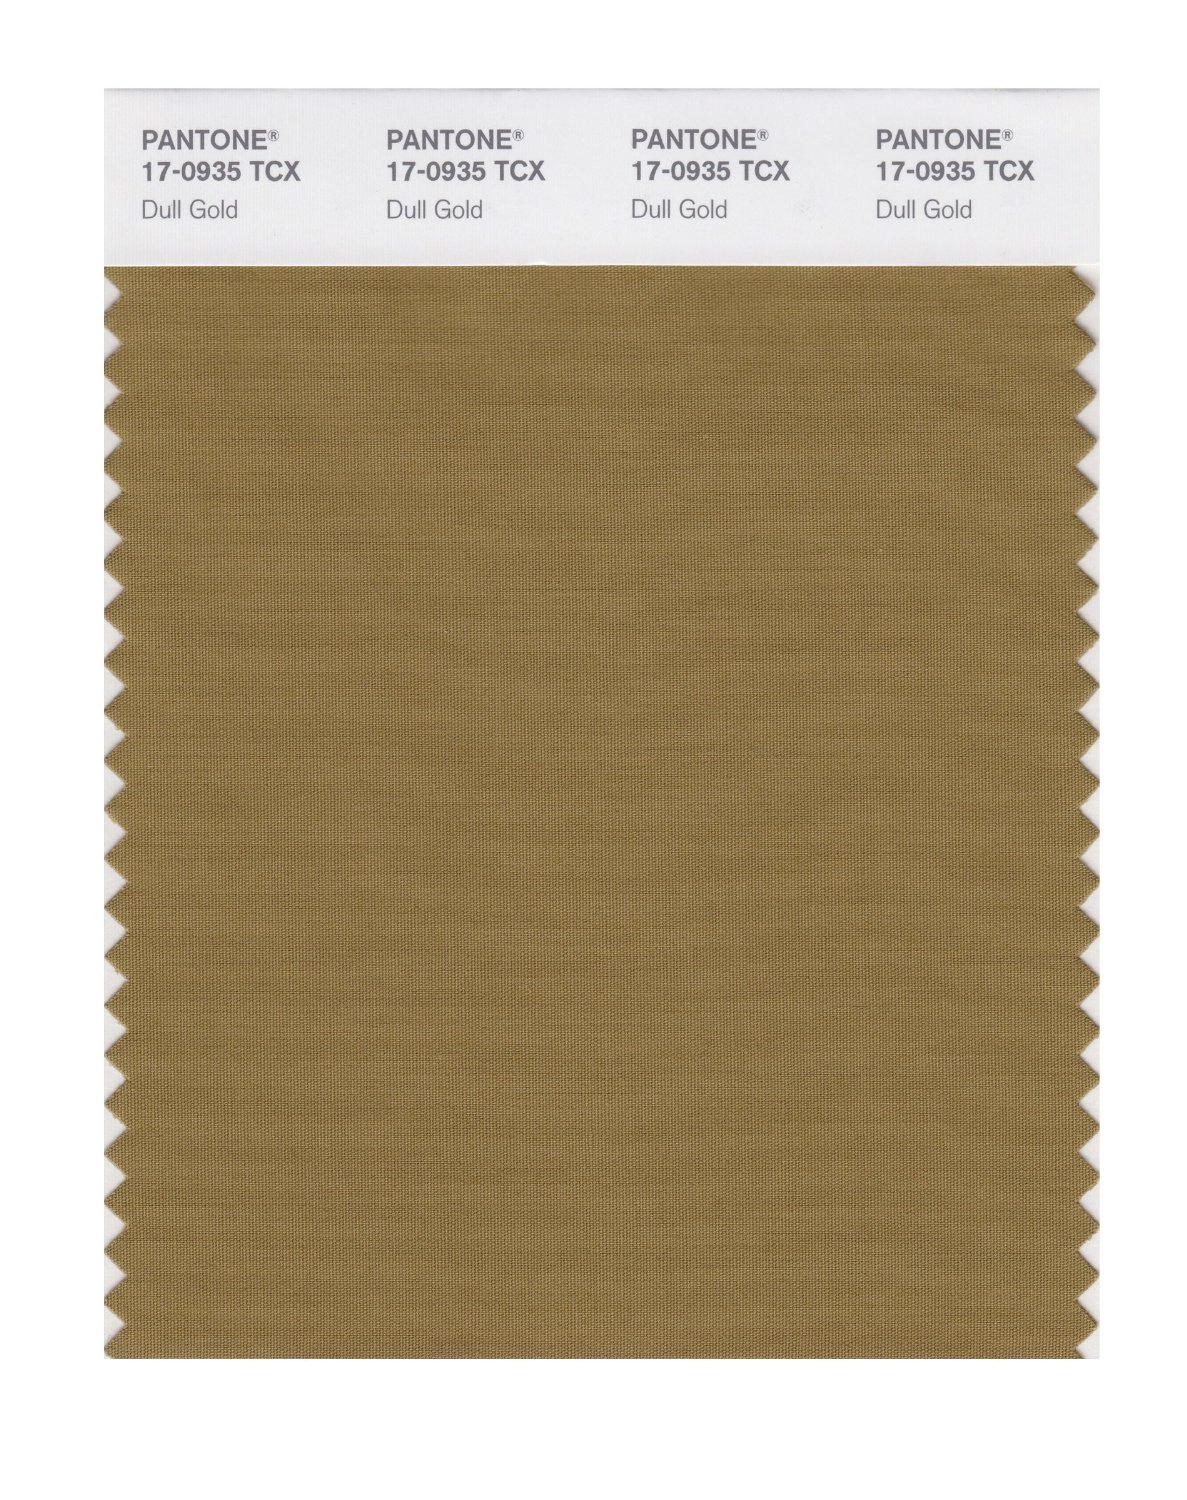 Pantone Smart Swatch 17-0935 Dull Gold